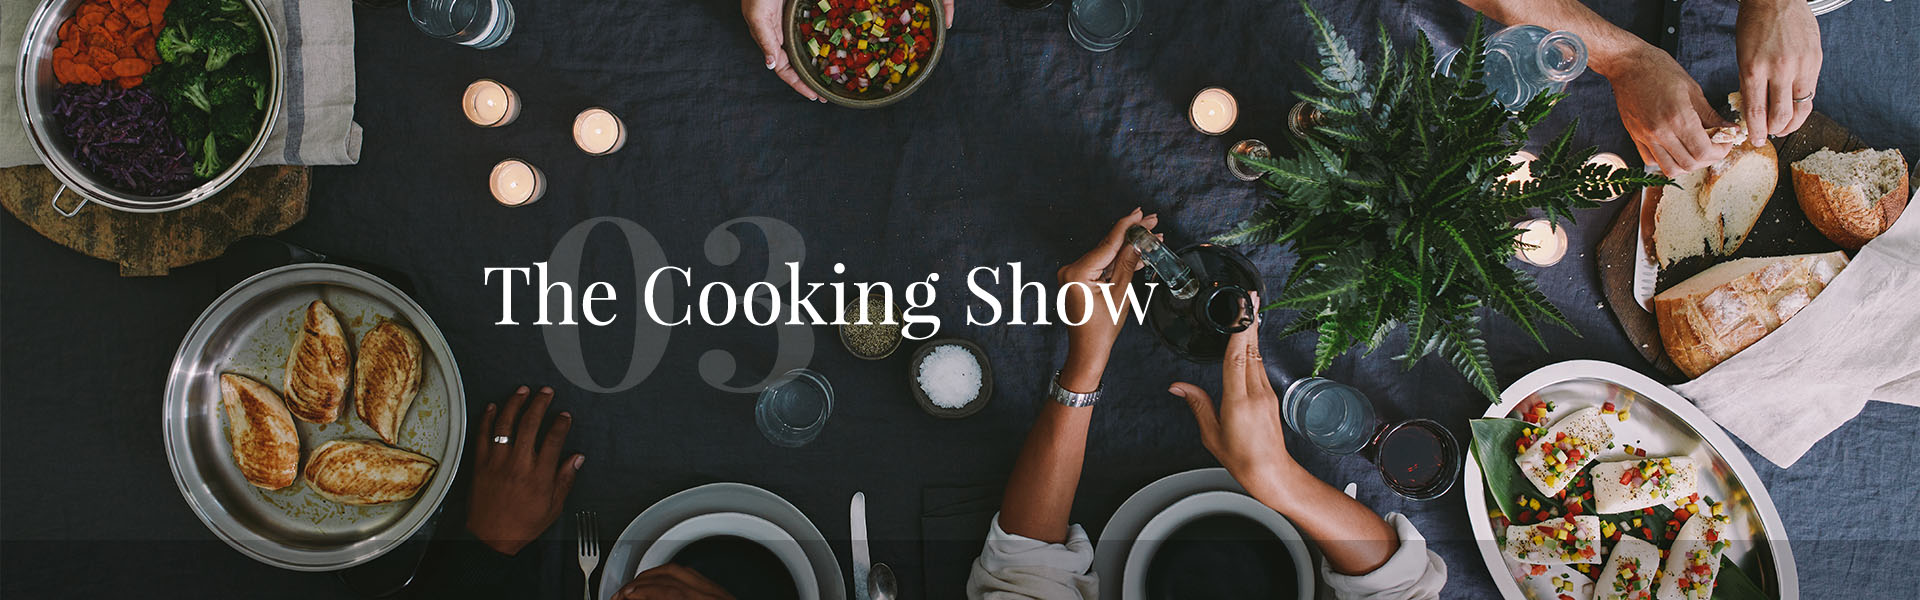 CookingShow_Final